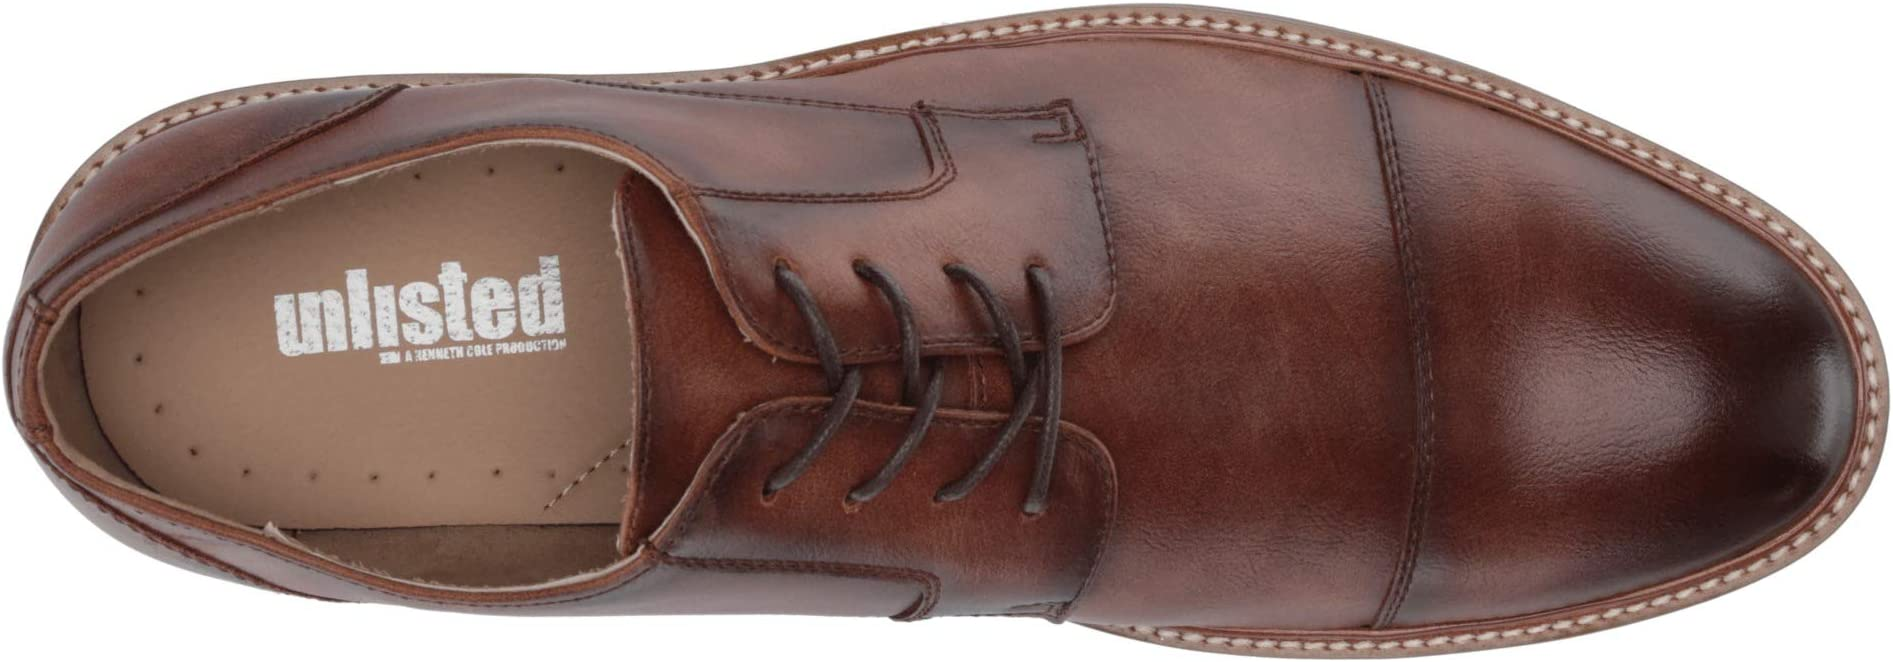 Kenneth Cole Unlisted Jimmie Lace-Up CT | Men's shoes | 2020 Newest